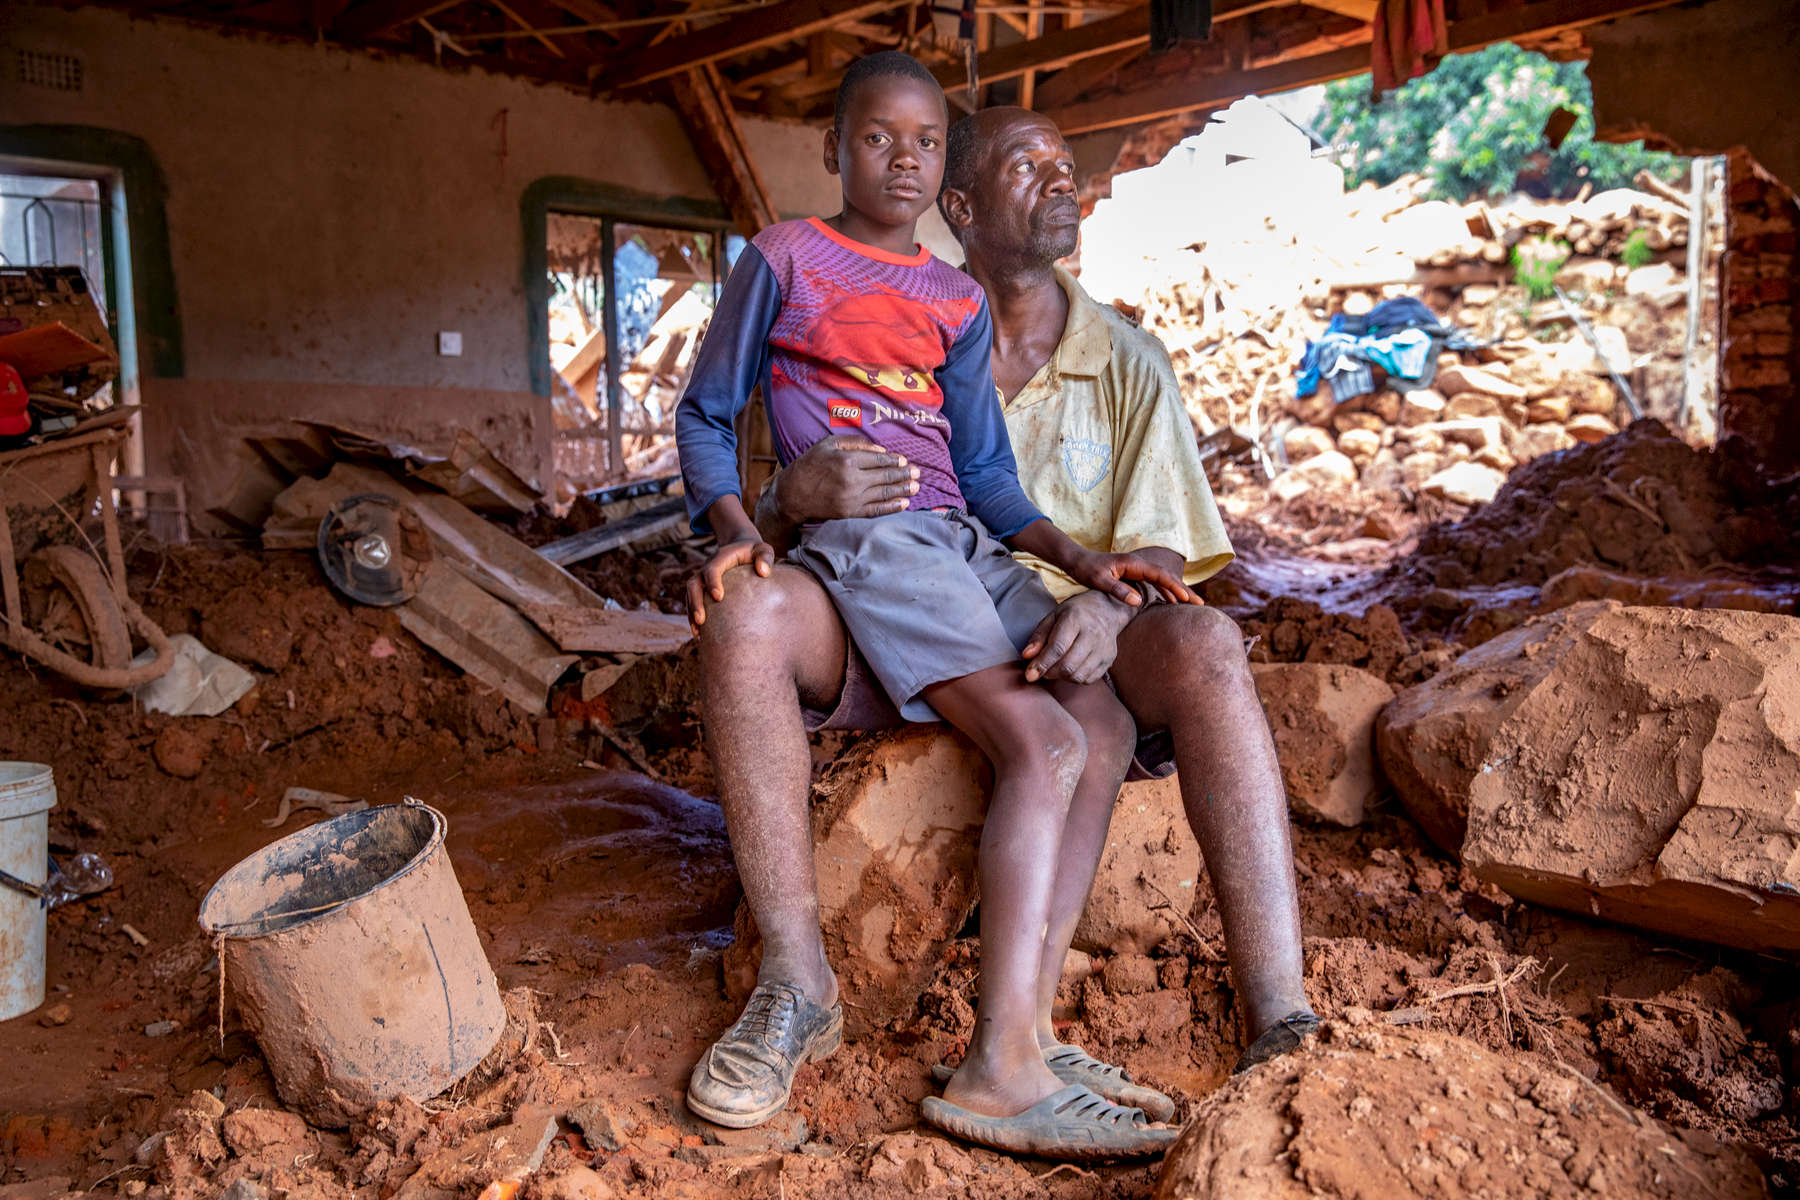 Anthony Machingauta, 52, is a schoolteacher. His son Leonard, 15, sits on his lap in the middle of their home. On March 16th, rains from Cyclone Idai unleashed mudslides from the hills surrounding Ngangu, which crushed the front wall of their house and exited out a side wall, leaving 4 feet of mud and unmovable boulders throughout their home. Anthony and his three sons all survived, but he is concerned about how he will be able to afford to feed them and pay their school fees.